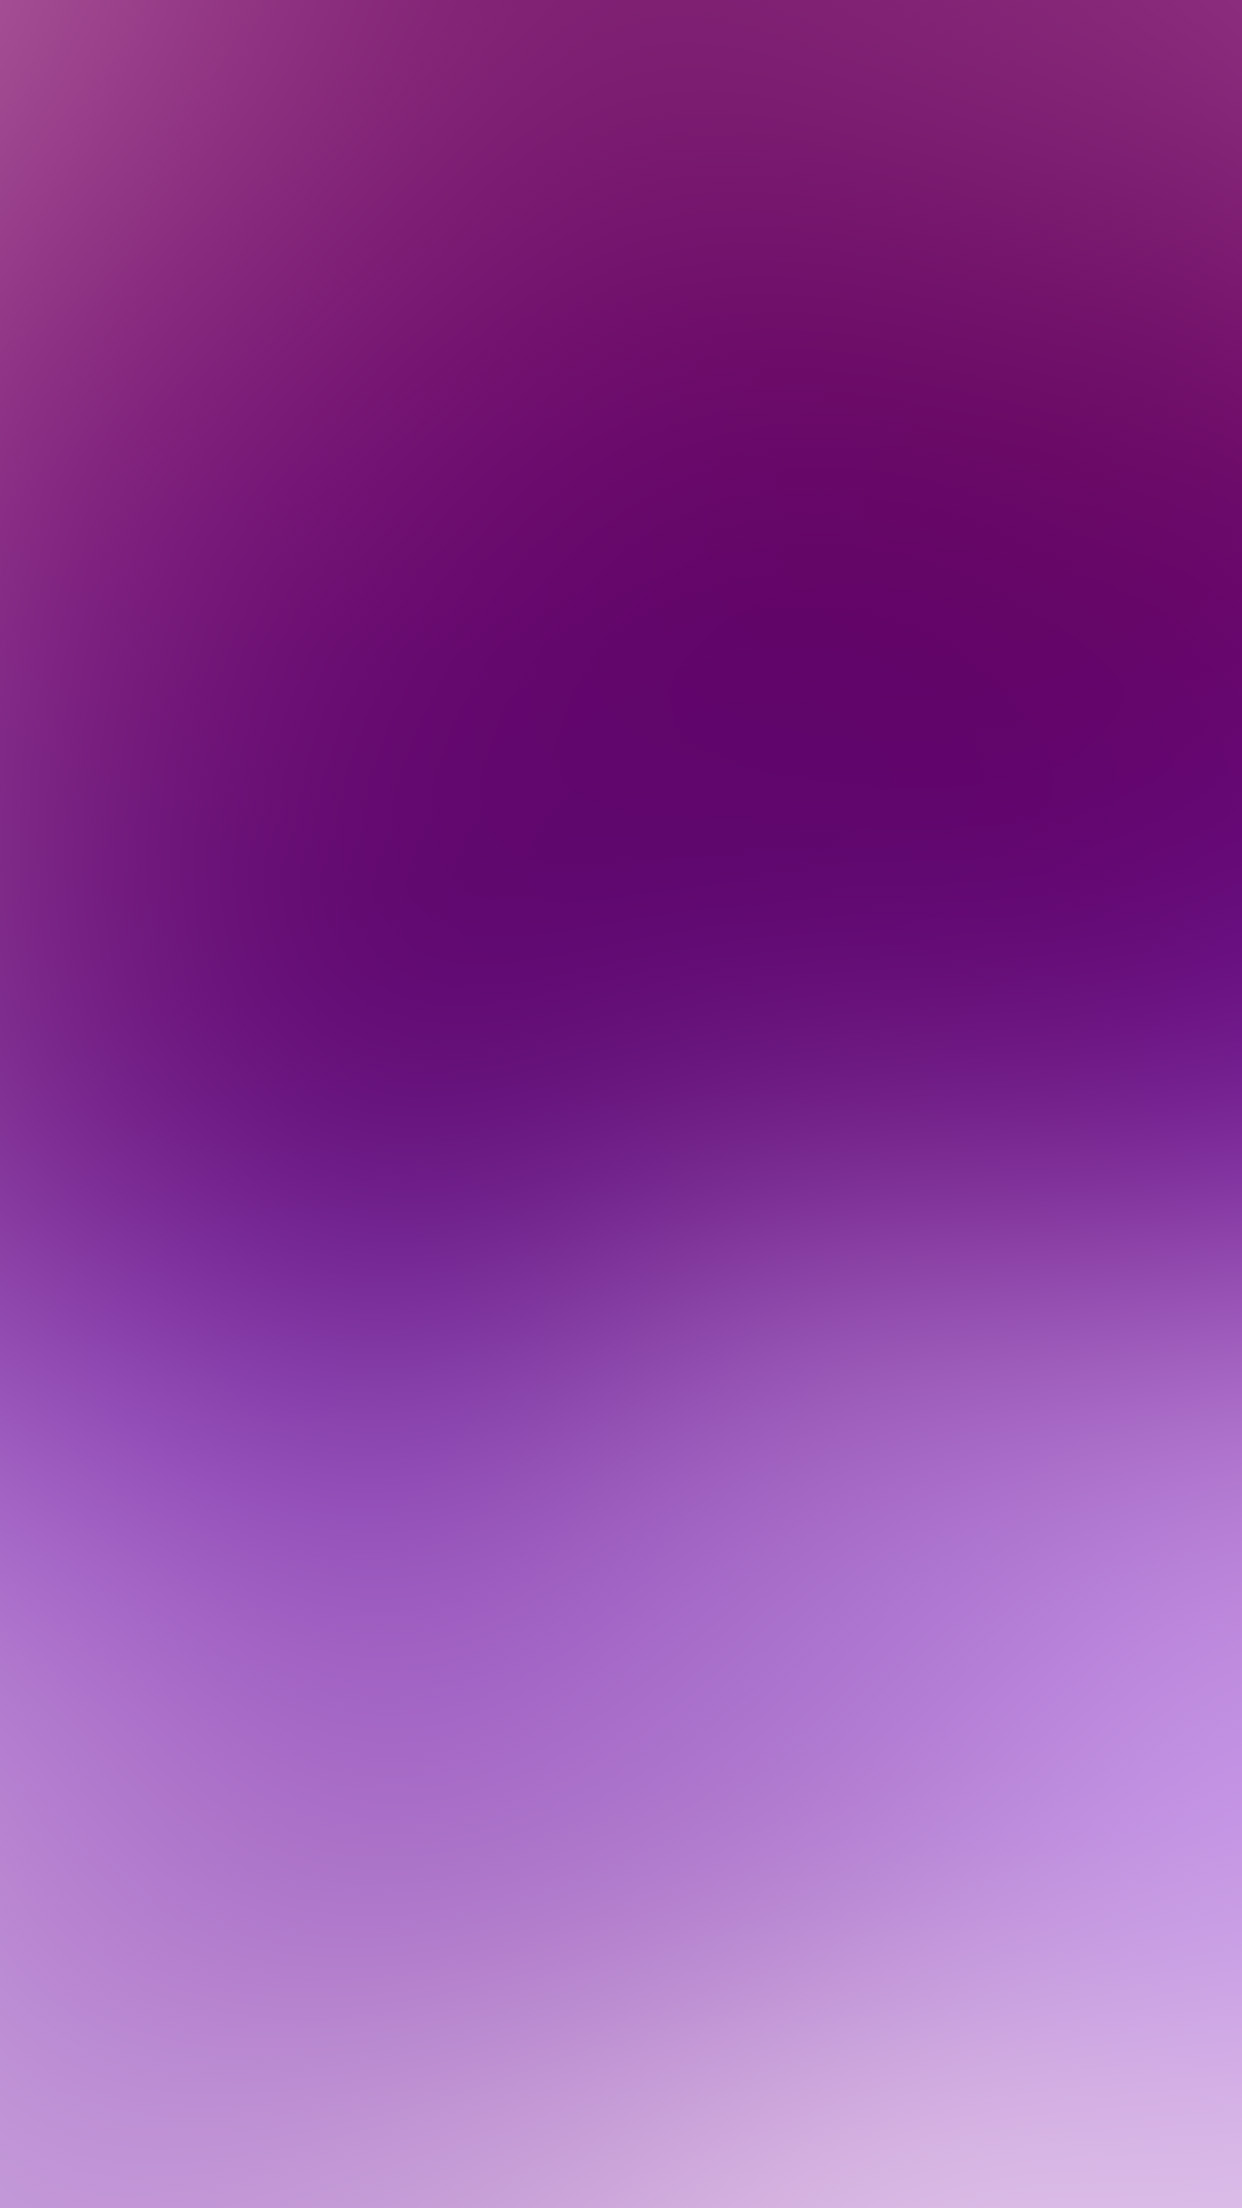 Hd Car Wallpaper For Iphone 6 Sf29 Purple Rain Gradation Blur Papers Co